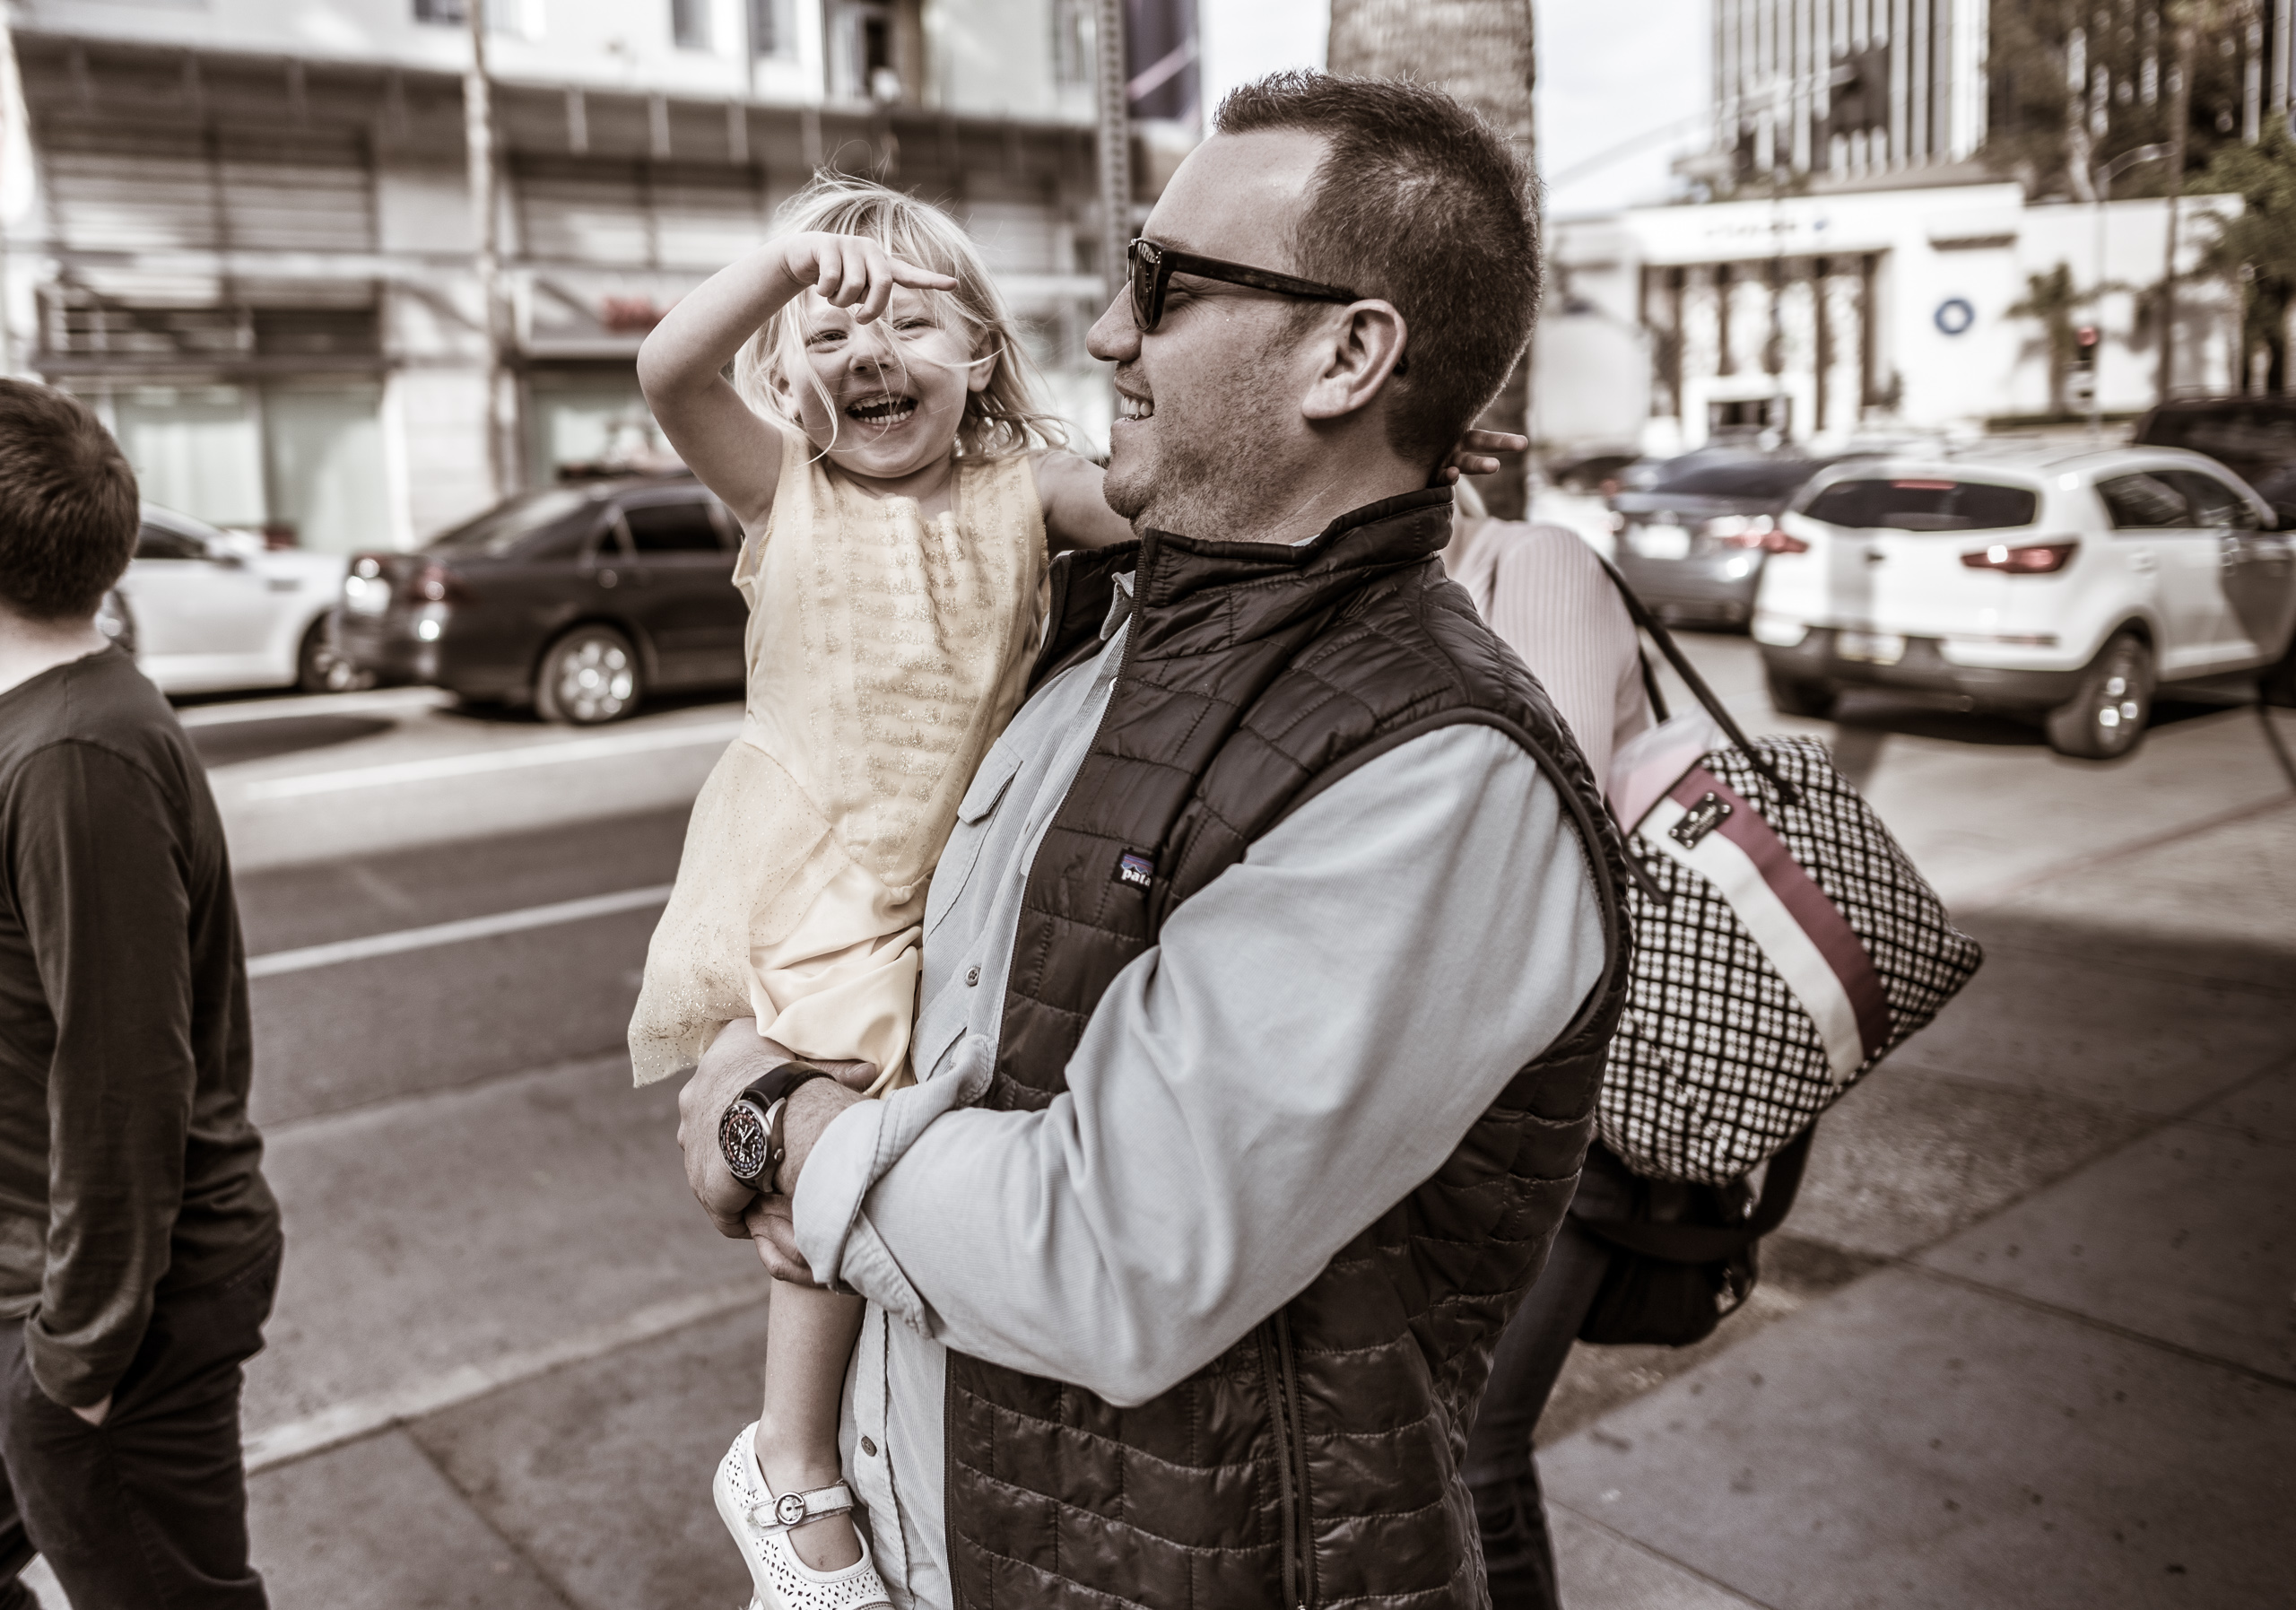 a man in sunglasses carries his young daughter in a yellow dress as she gaily points out a direction